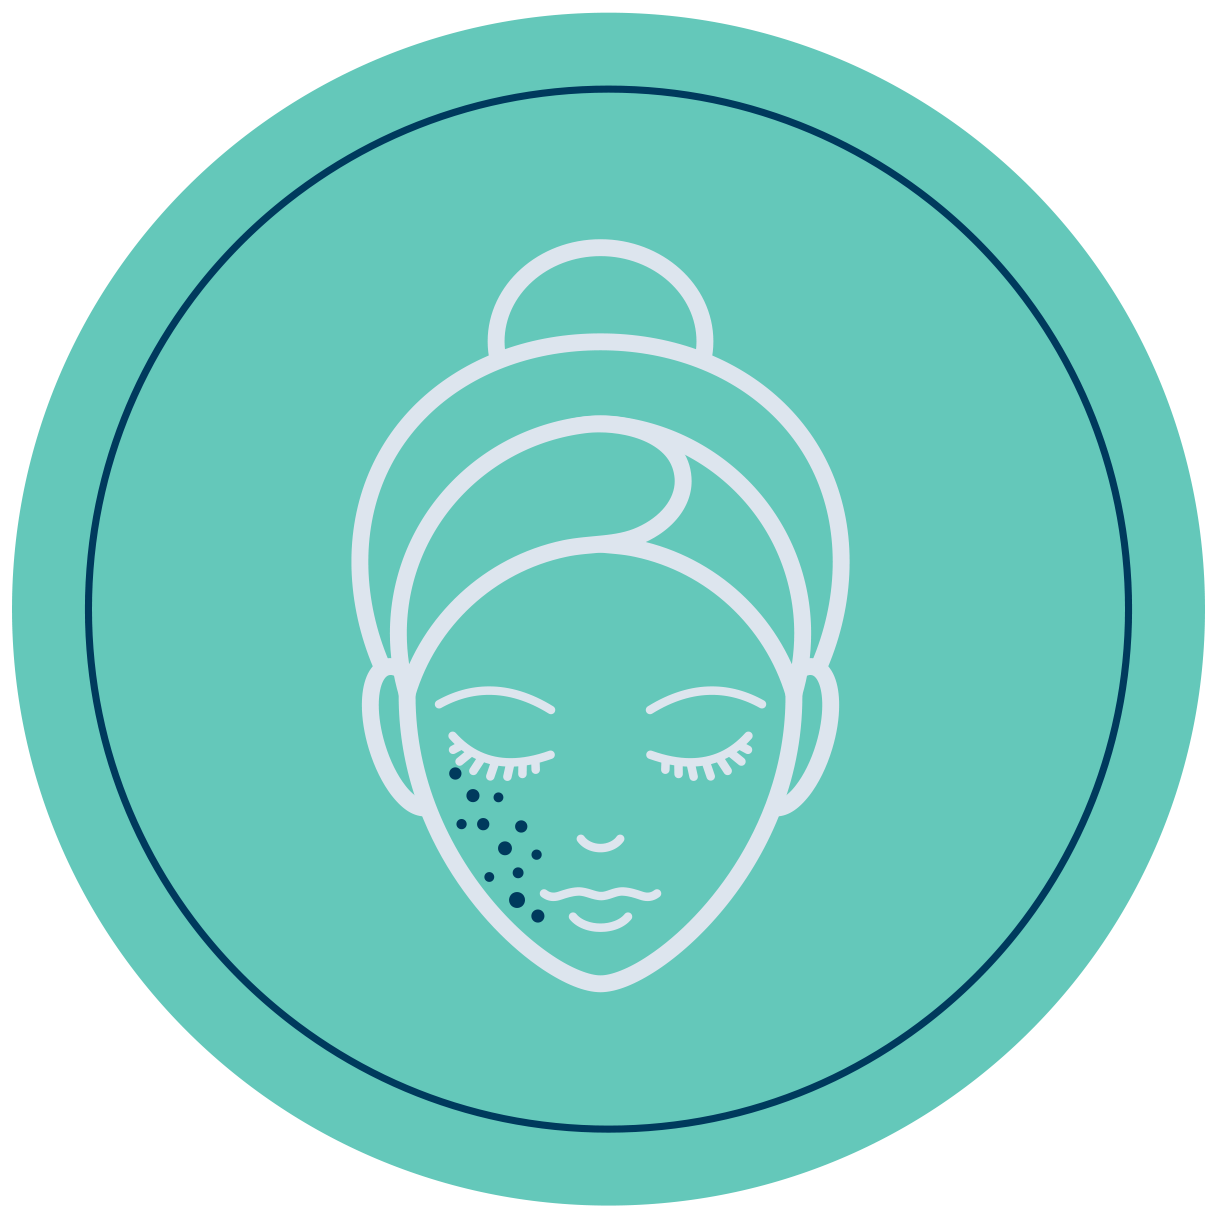 Woman face icon - Venusian CO2 carboxytherapy dermatology protocol